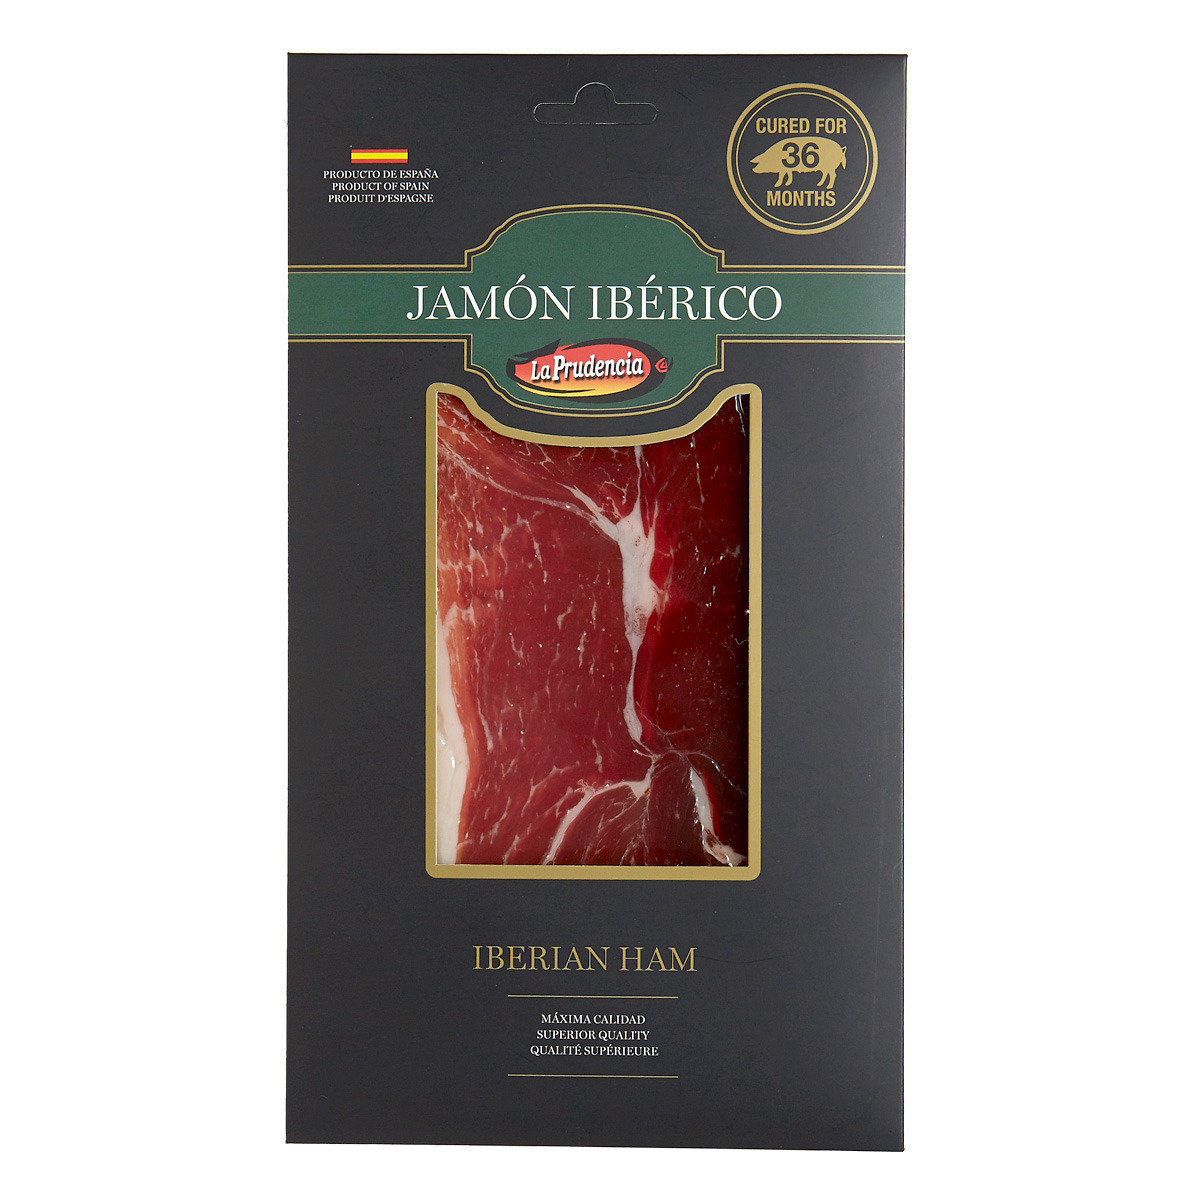 Jamon Iberico (Cured 36 months)(Chilled)